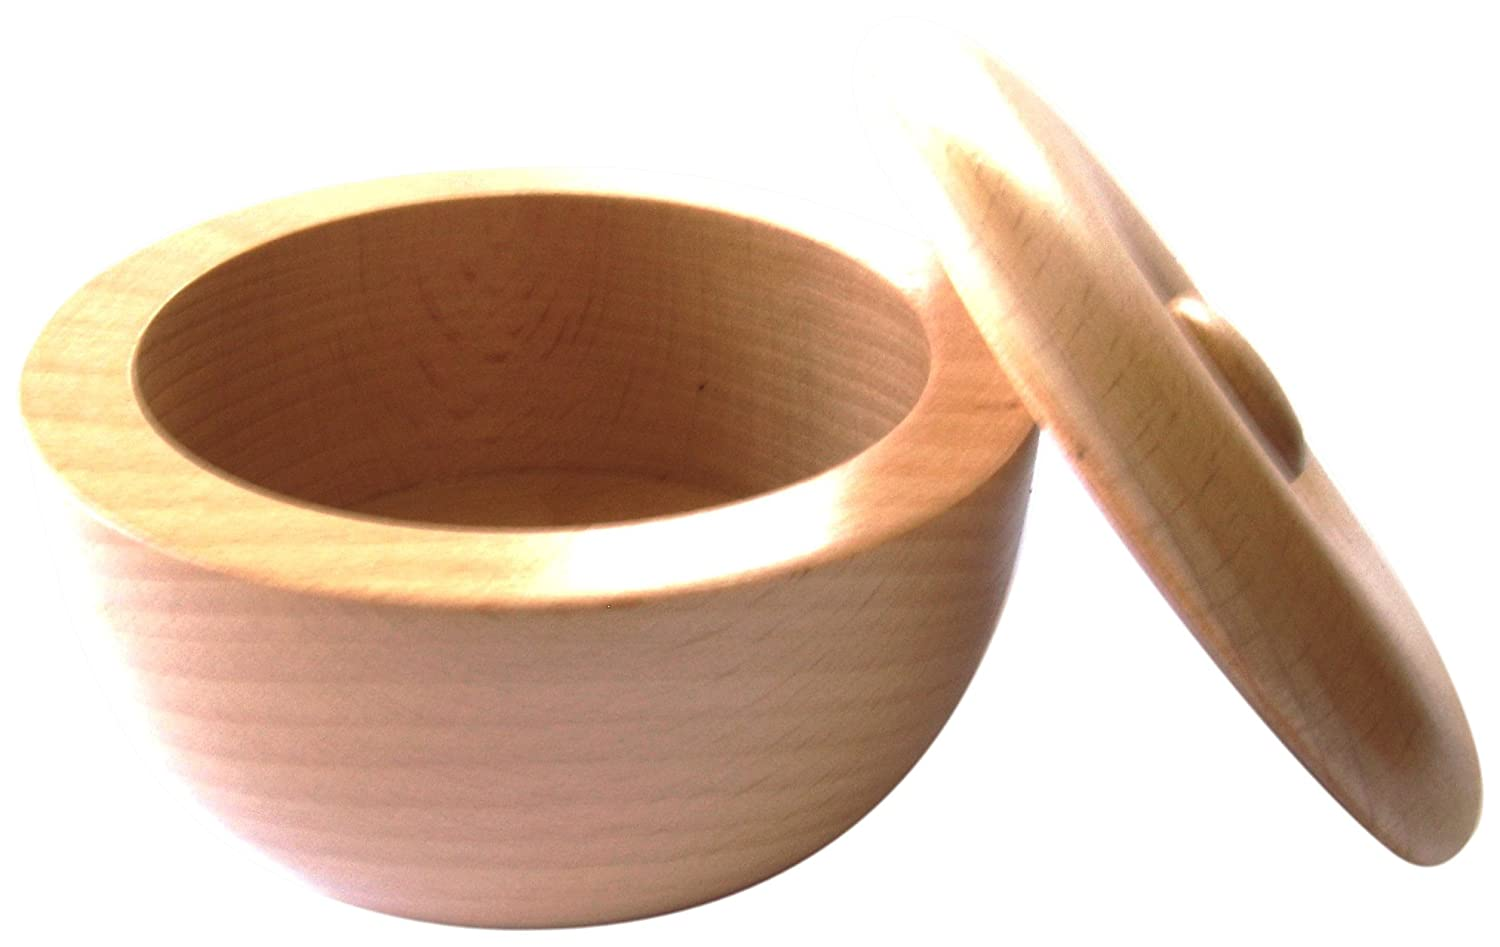 Col. Conk Products Light Beech Wood Bowl with Lid 400